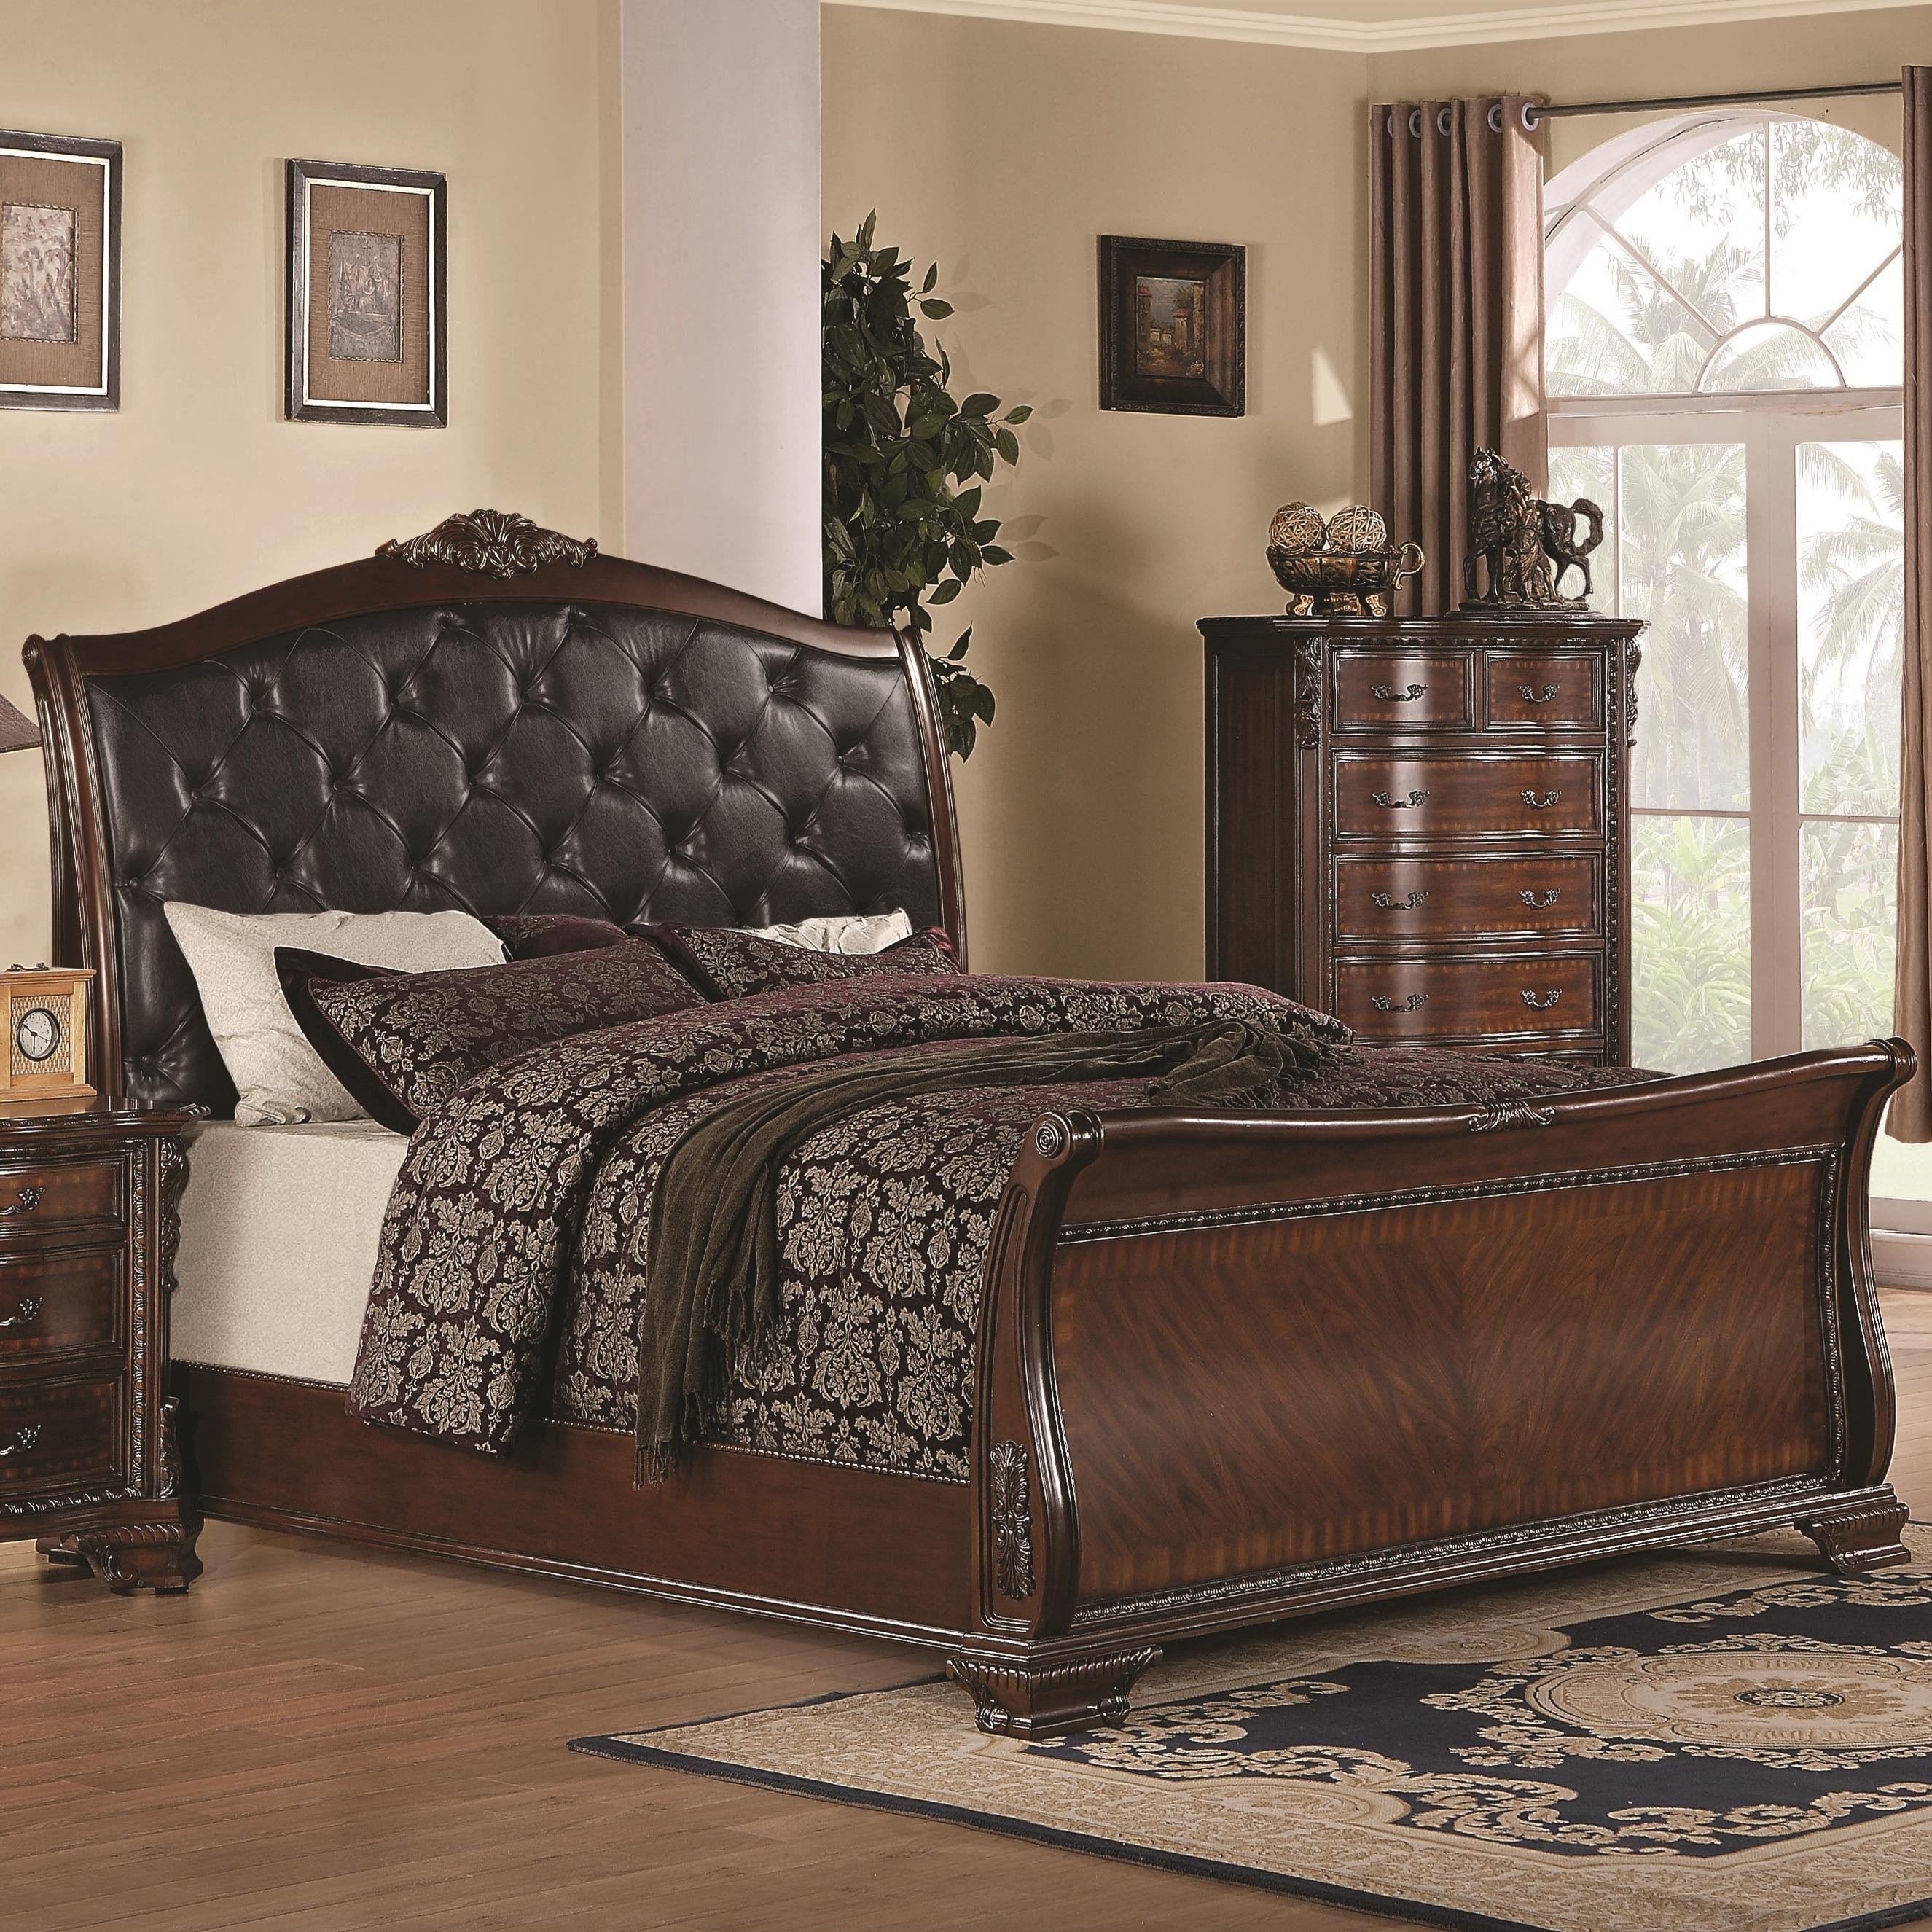 Cortina Sleigh Bedroom Set Lovely Bedroom Royal Queen Sleigh Bed Frame with Elegant Creative